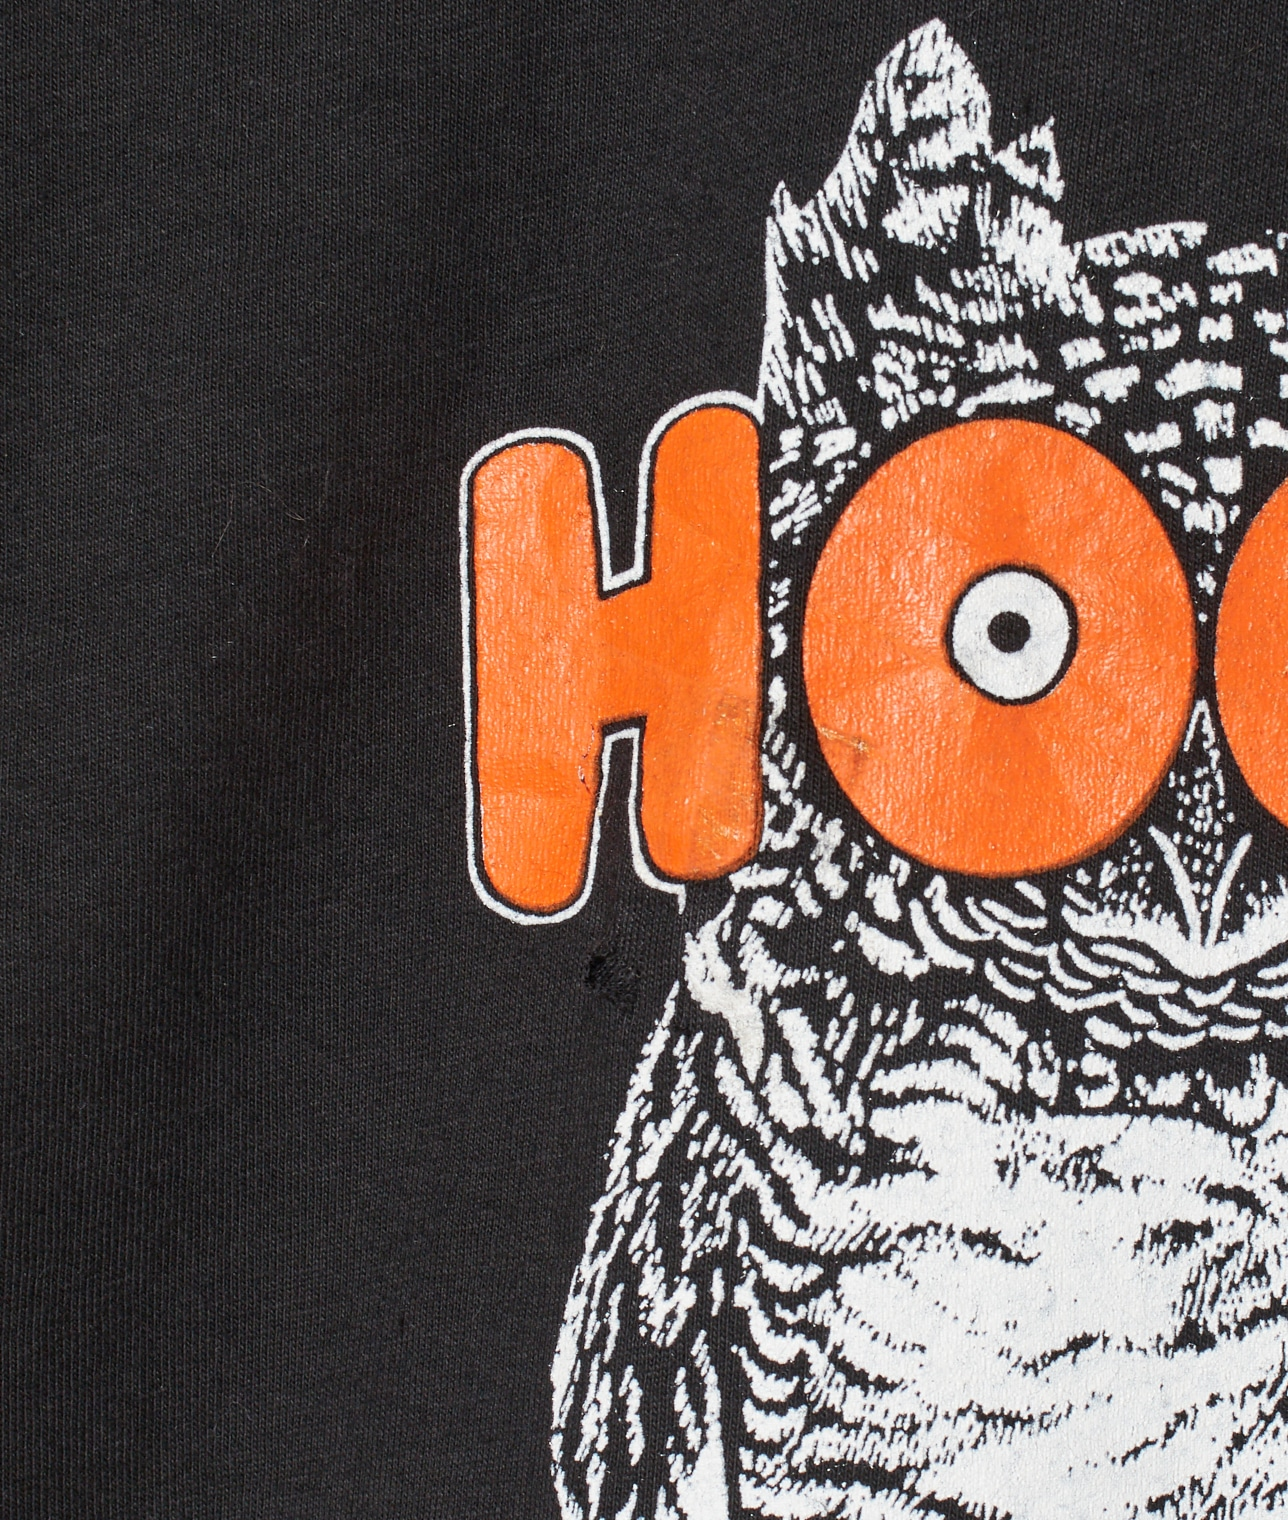 USED/HOOTERS T SHIRT 詳細画像 BLACK 3